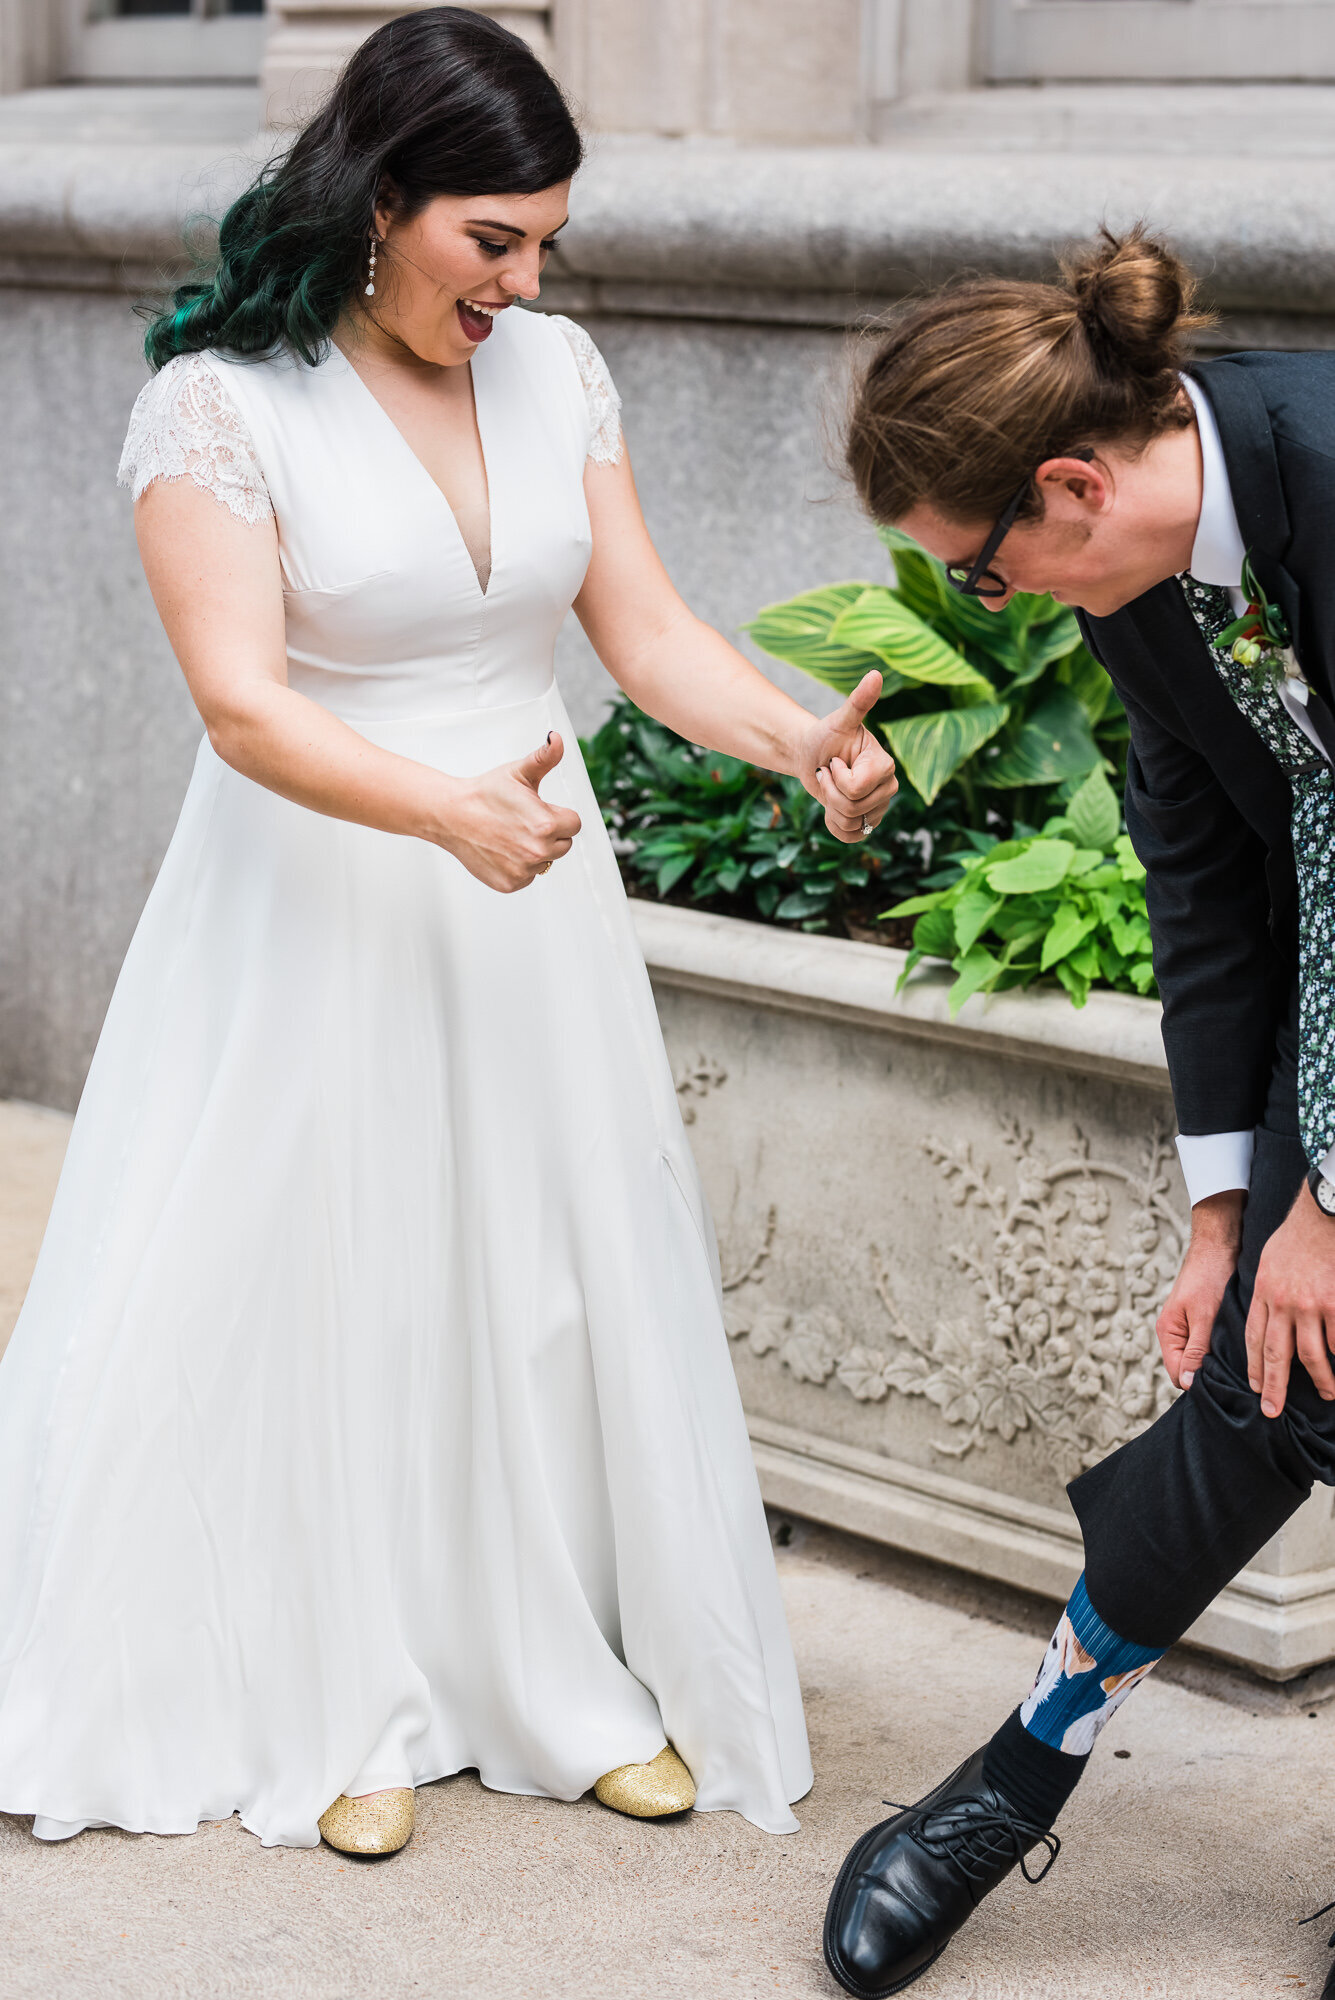 Bride gives groom thumbs up as he shows her his socks before their St. Louis wedding